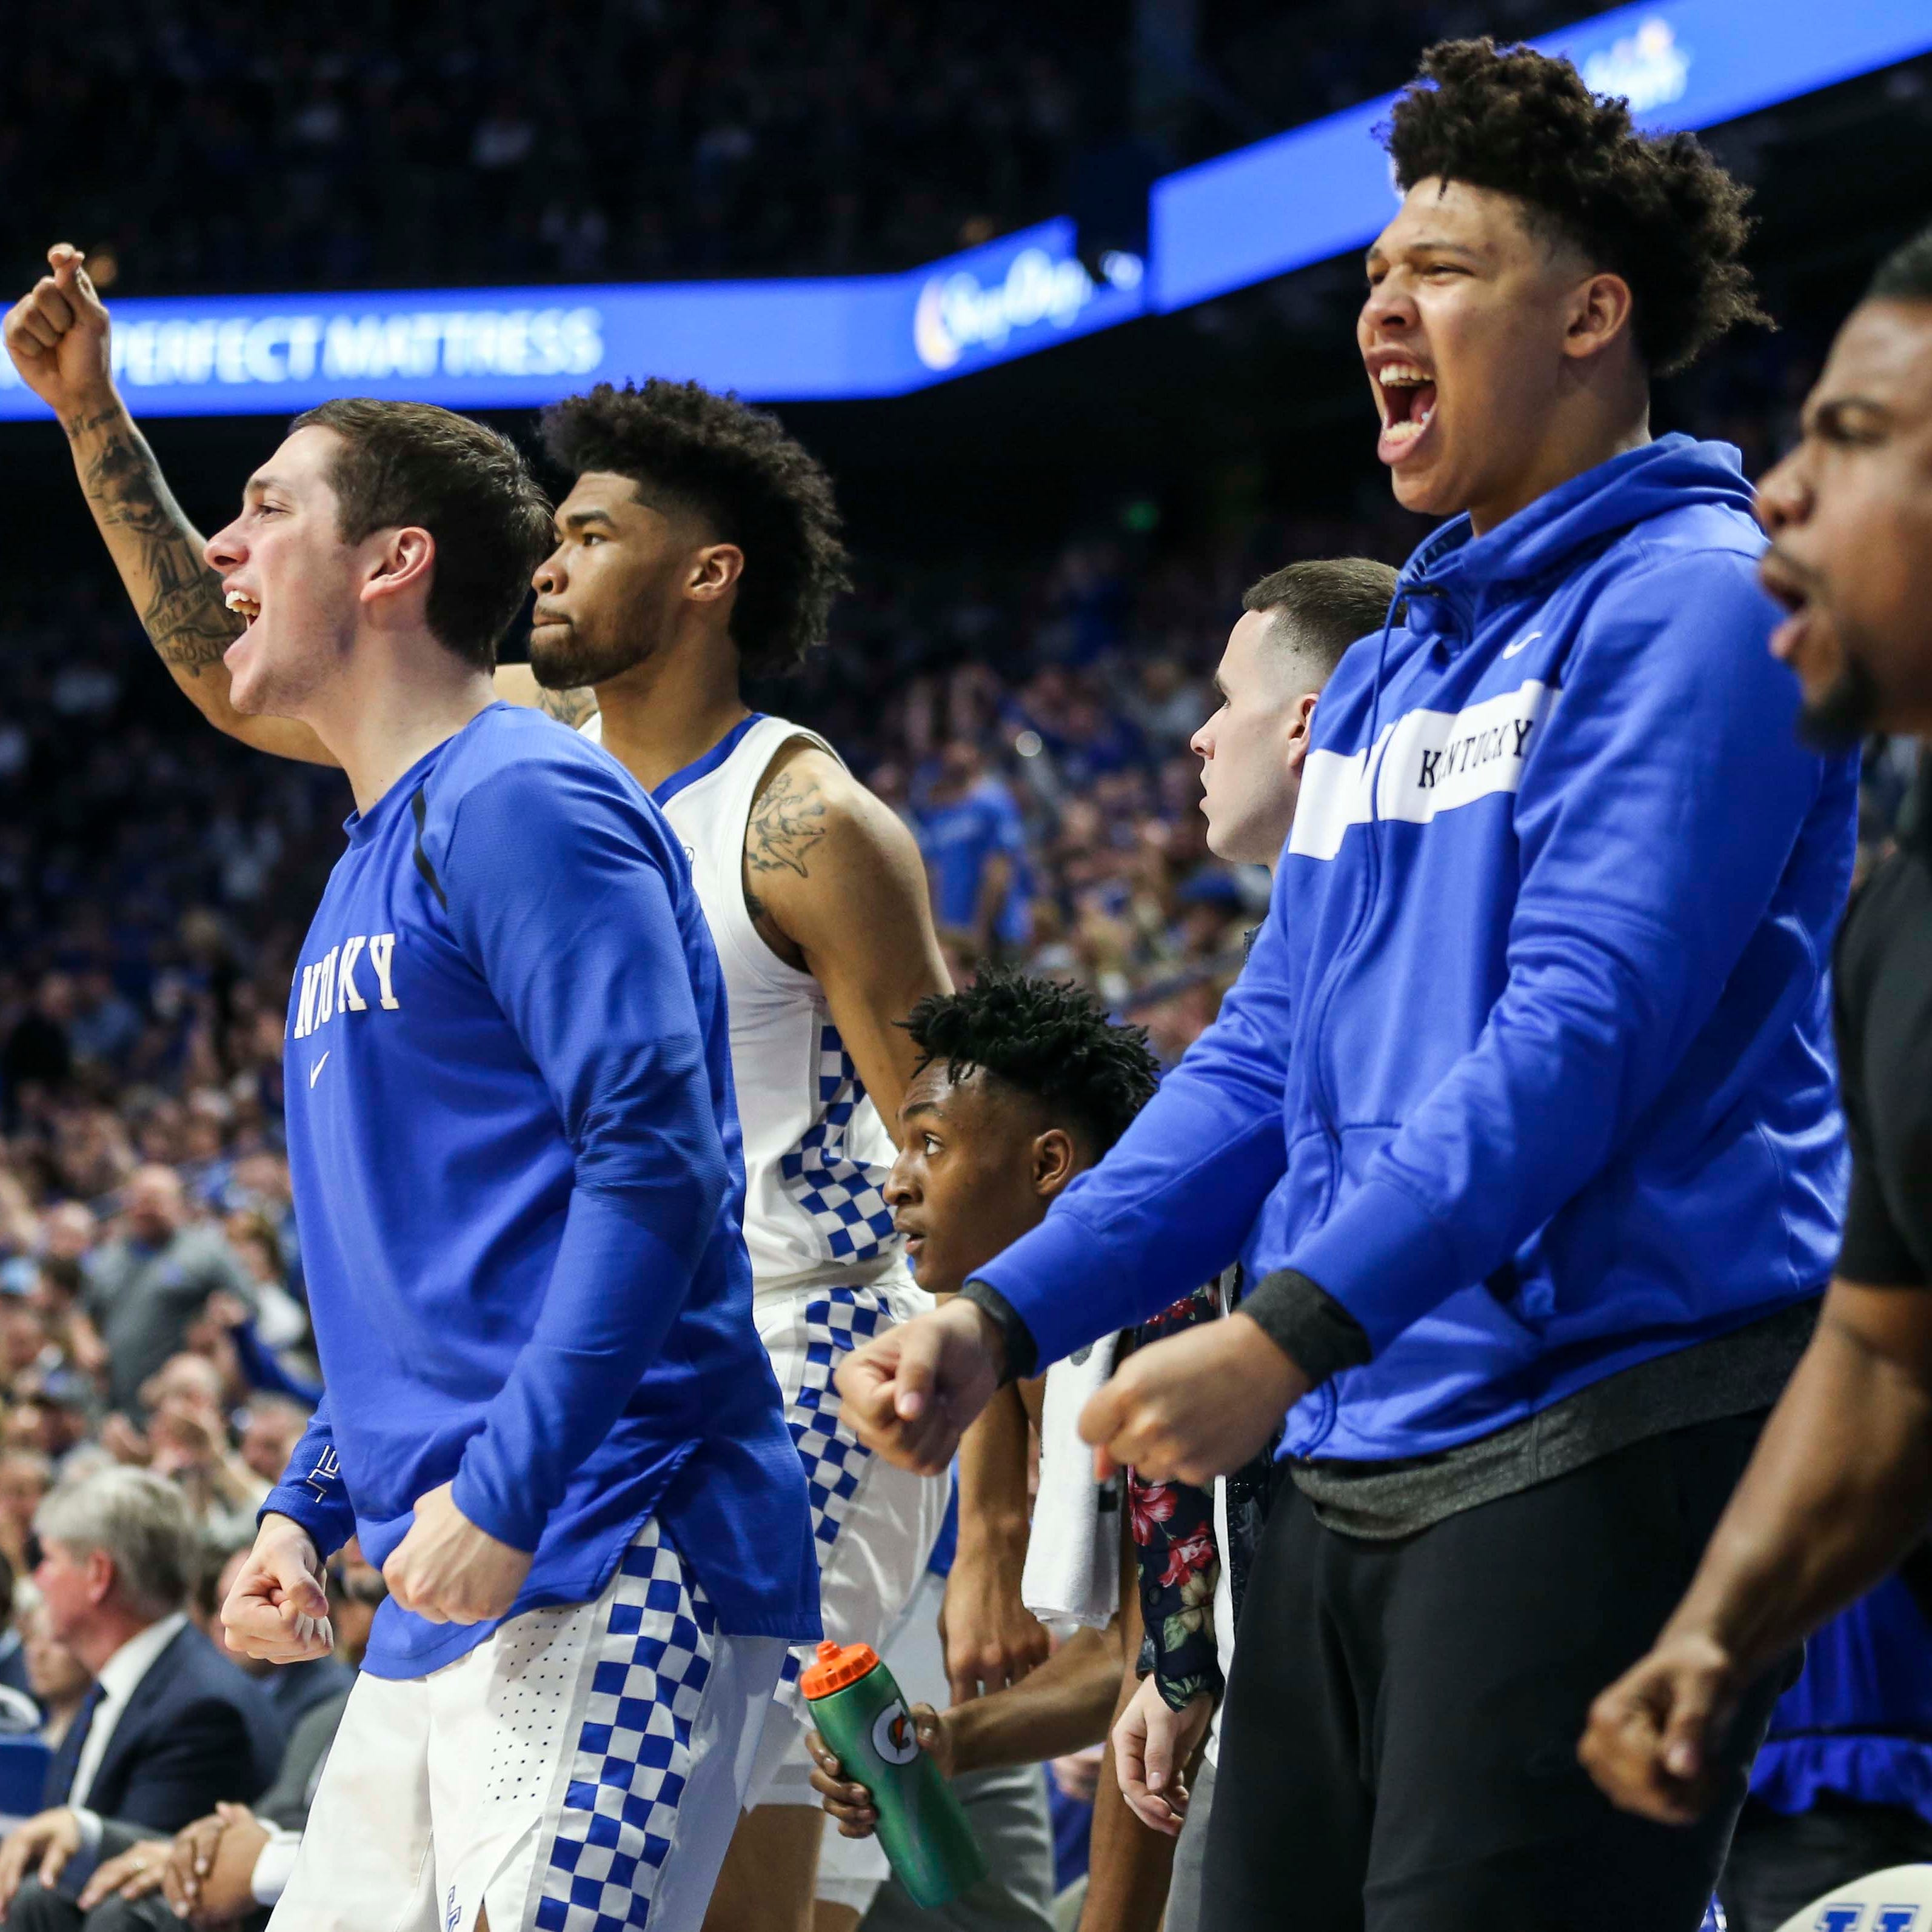 SEC Tournament preview: The stakes are high for Kentucky basketball